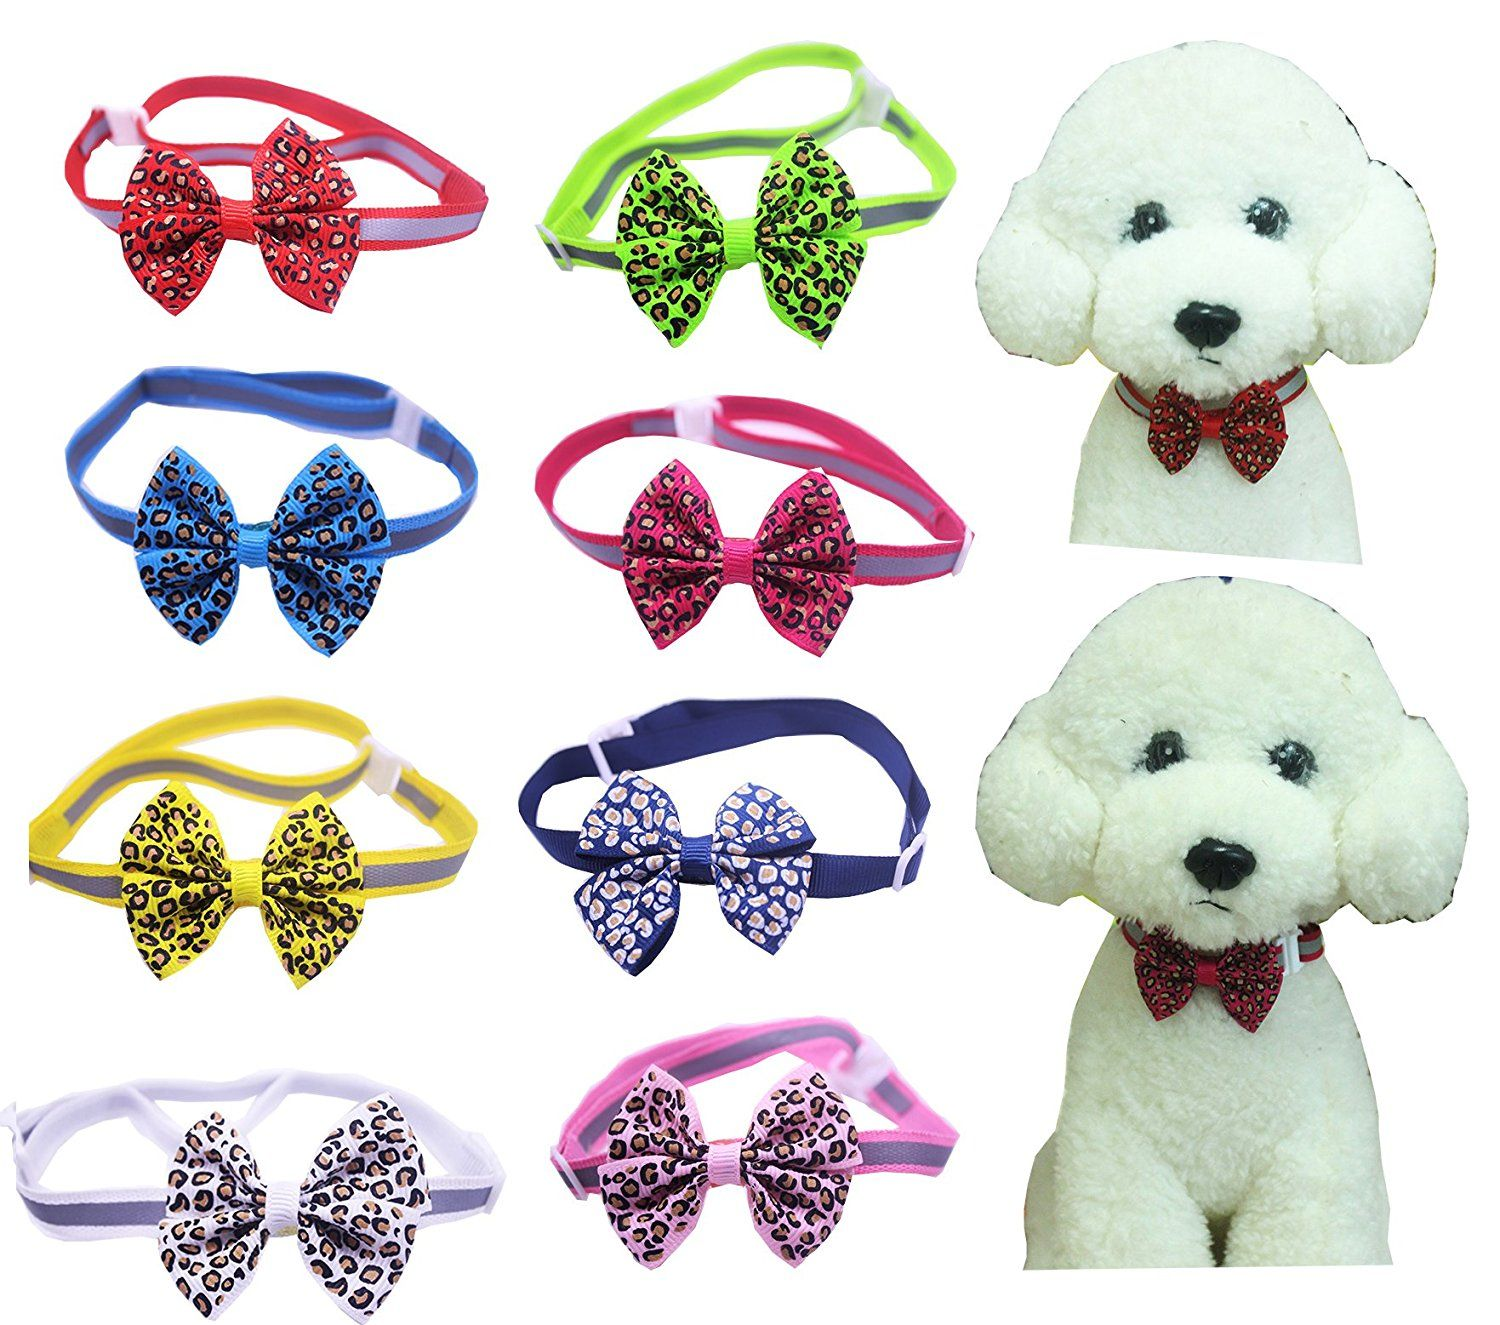 Yagopet pcspack pet dog bow tie for small dogs dog neckties